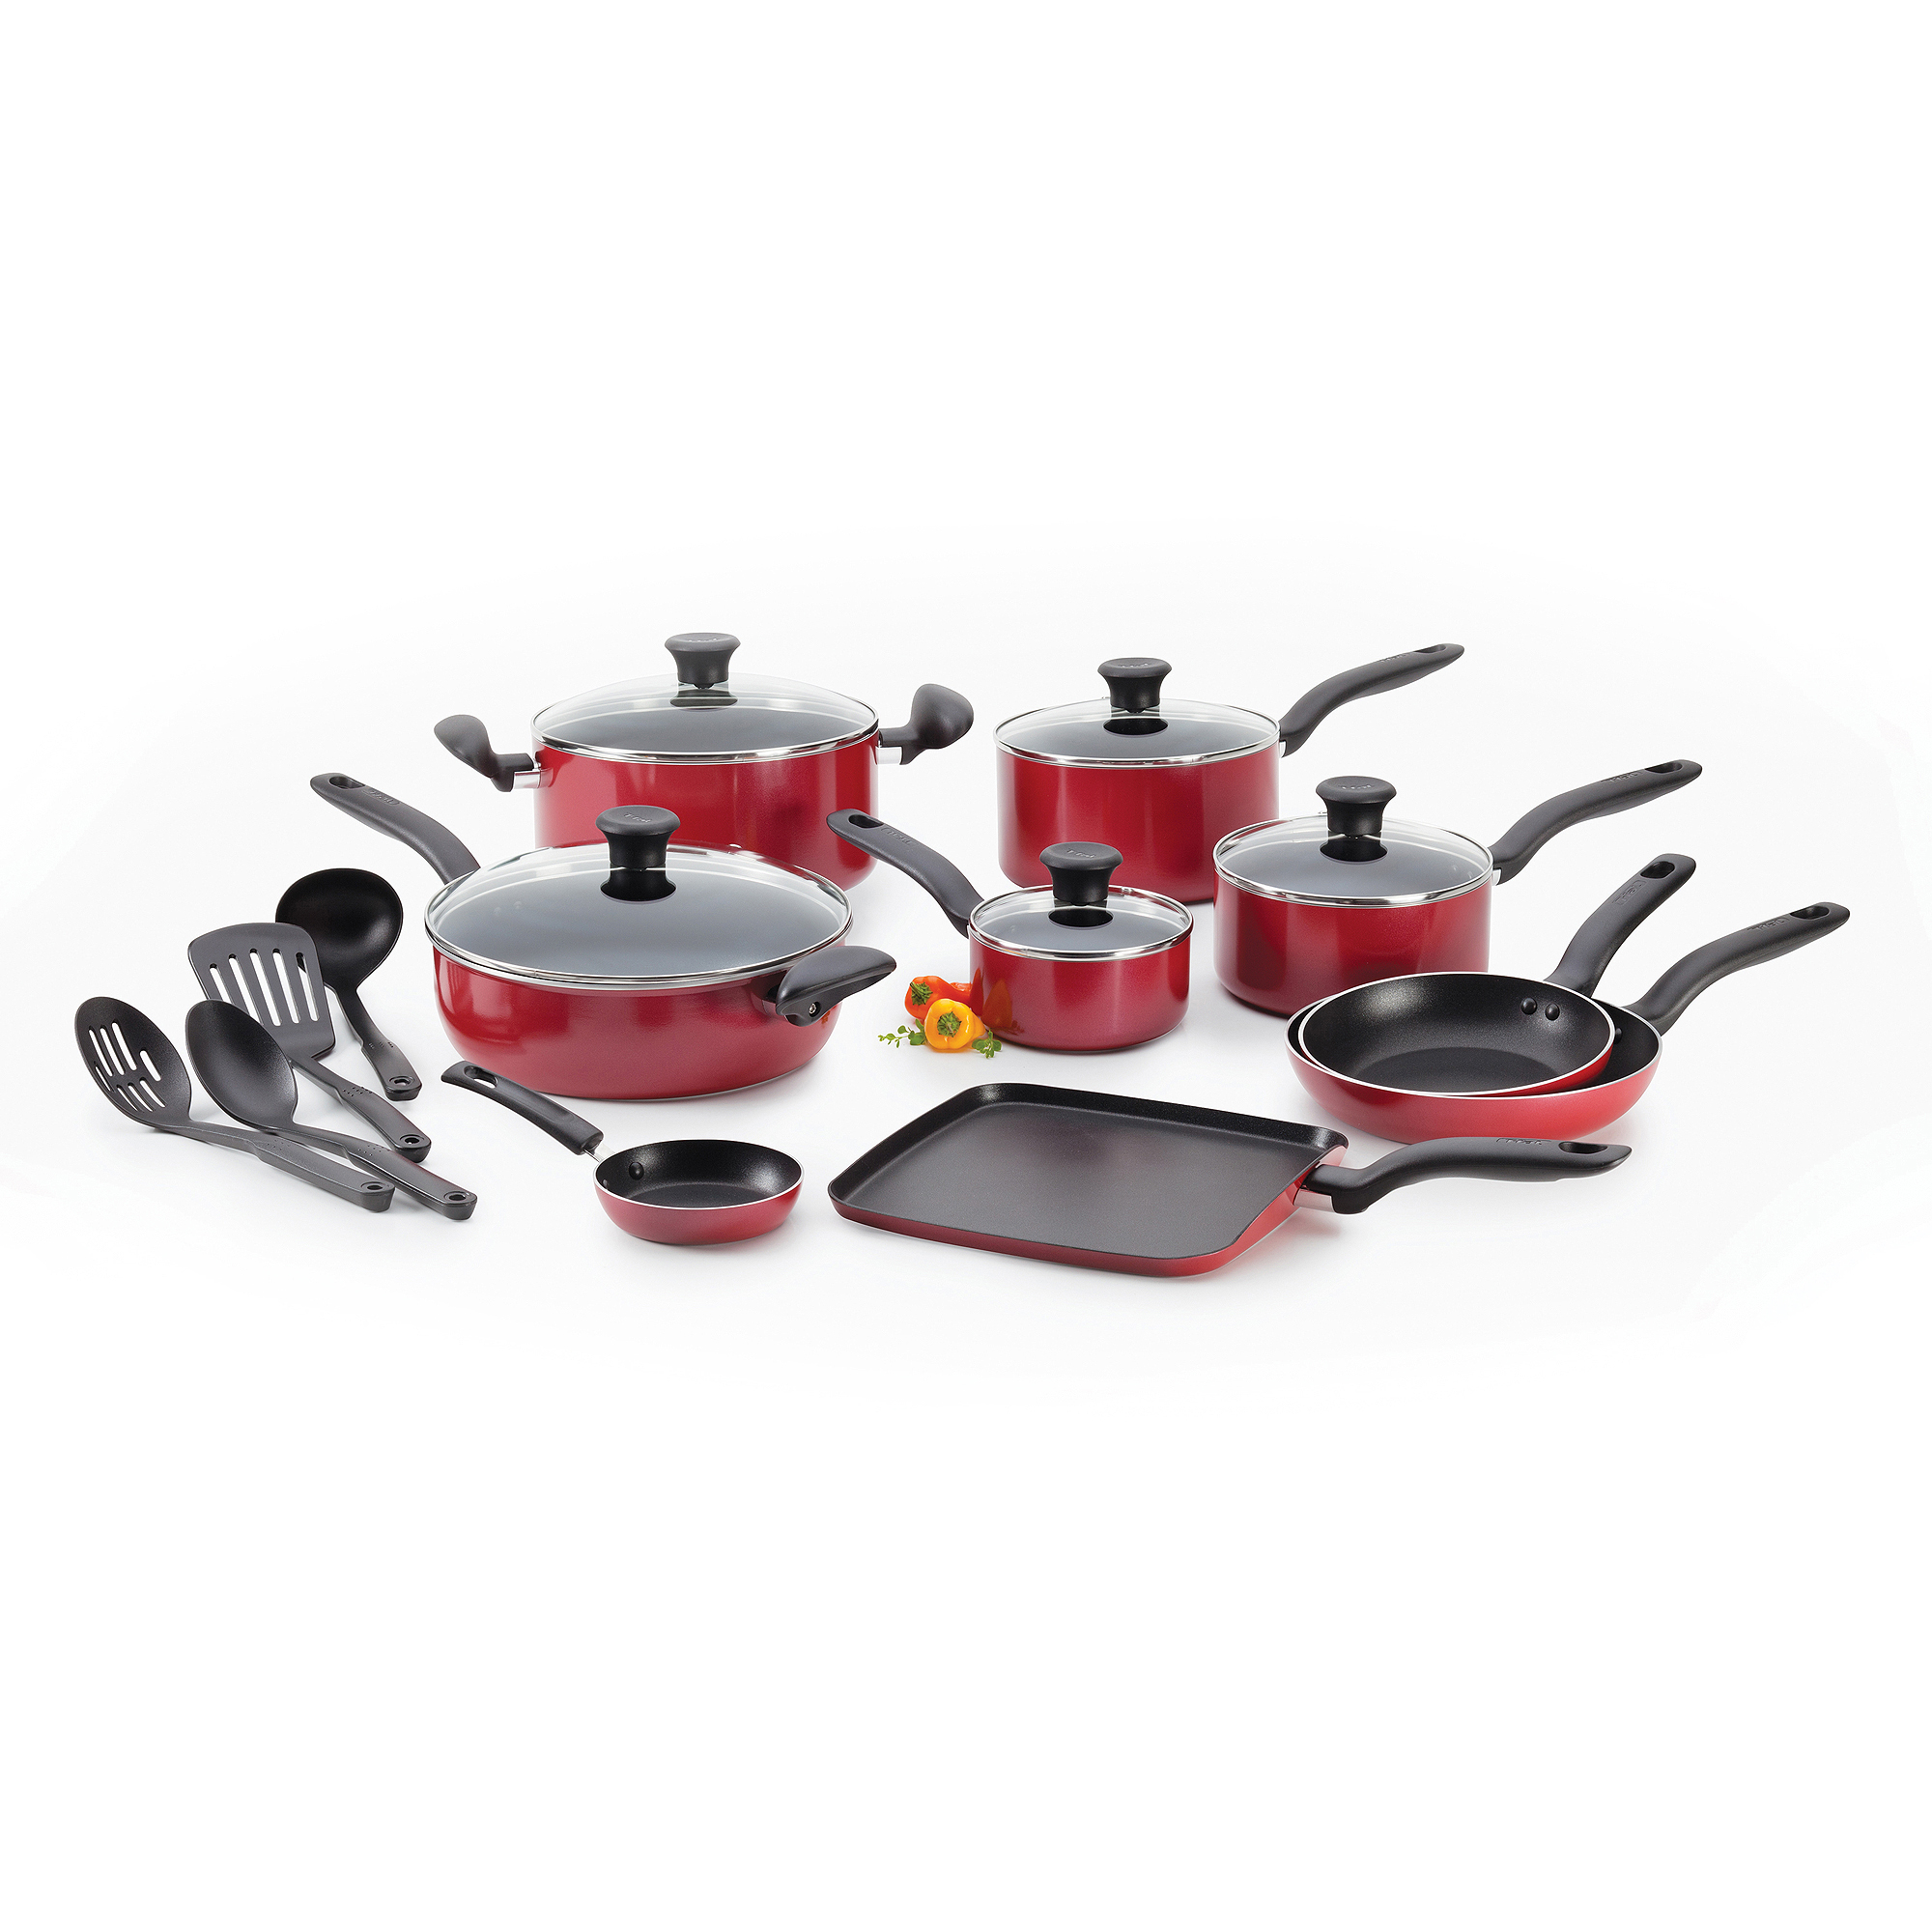 T-Fal Initiatives Non-Stick 18-Piece Set, Red